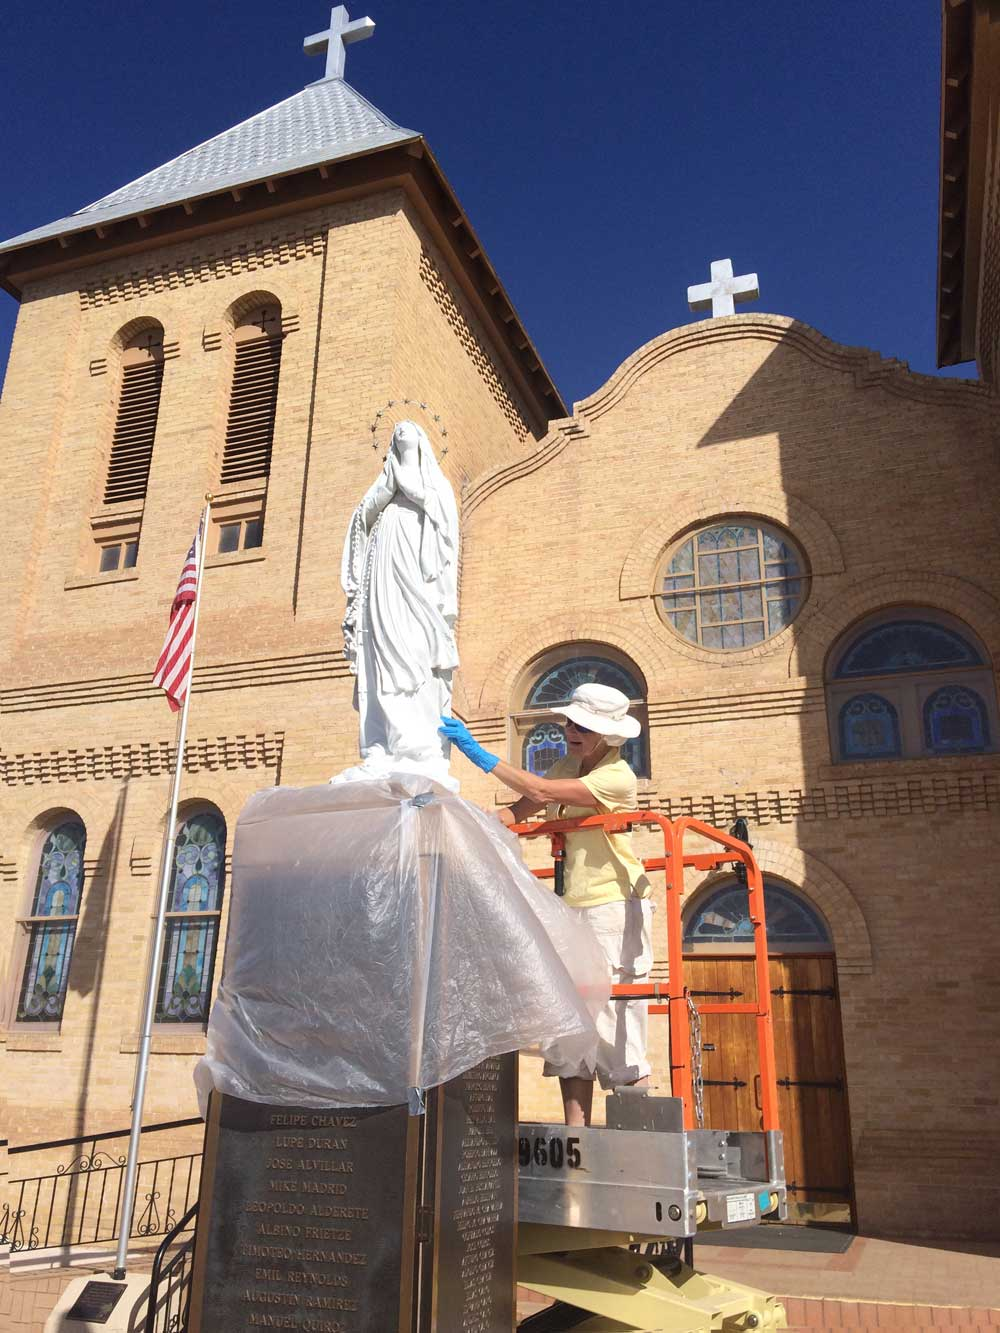 Virgin Mary statue restoration at Old Mesilla church in Mesilla New Mexico